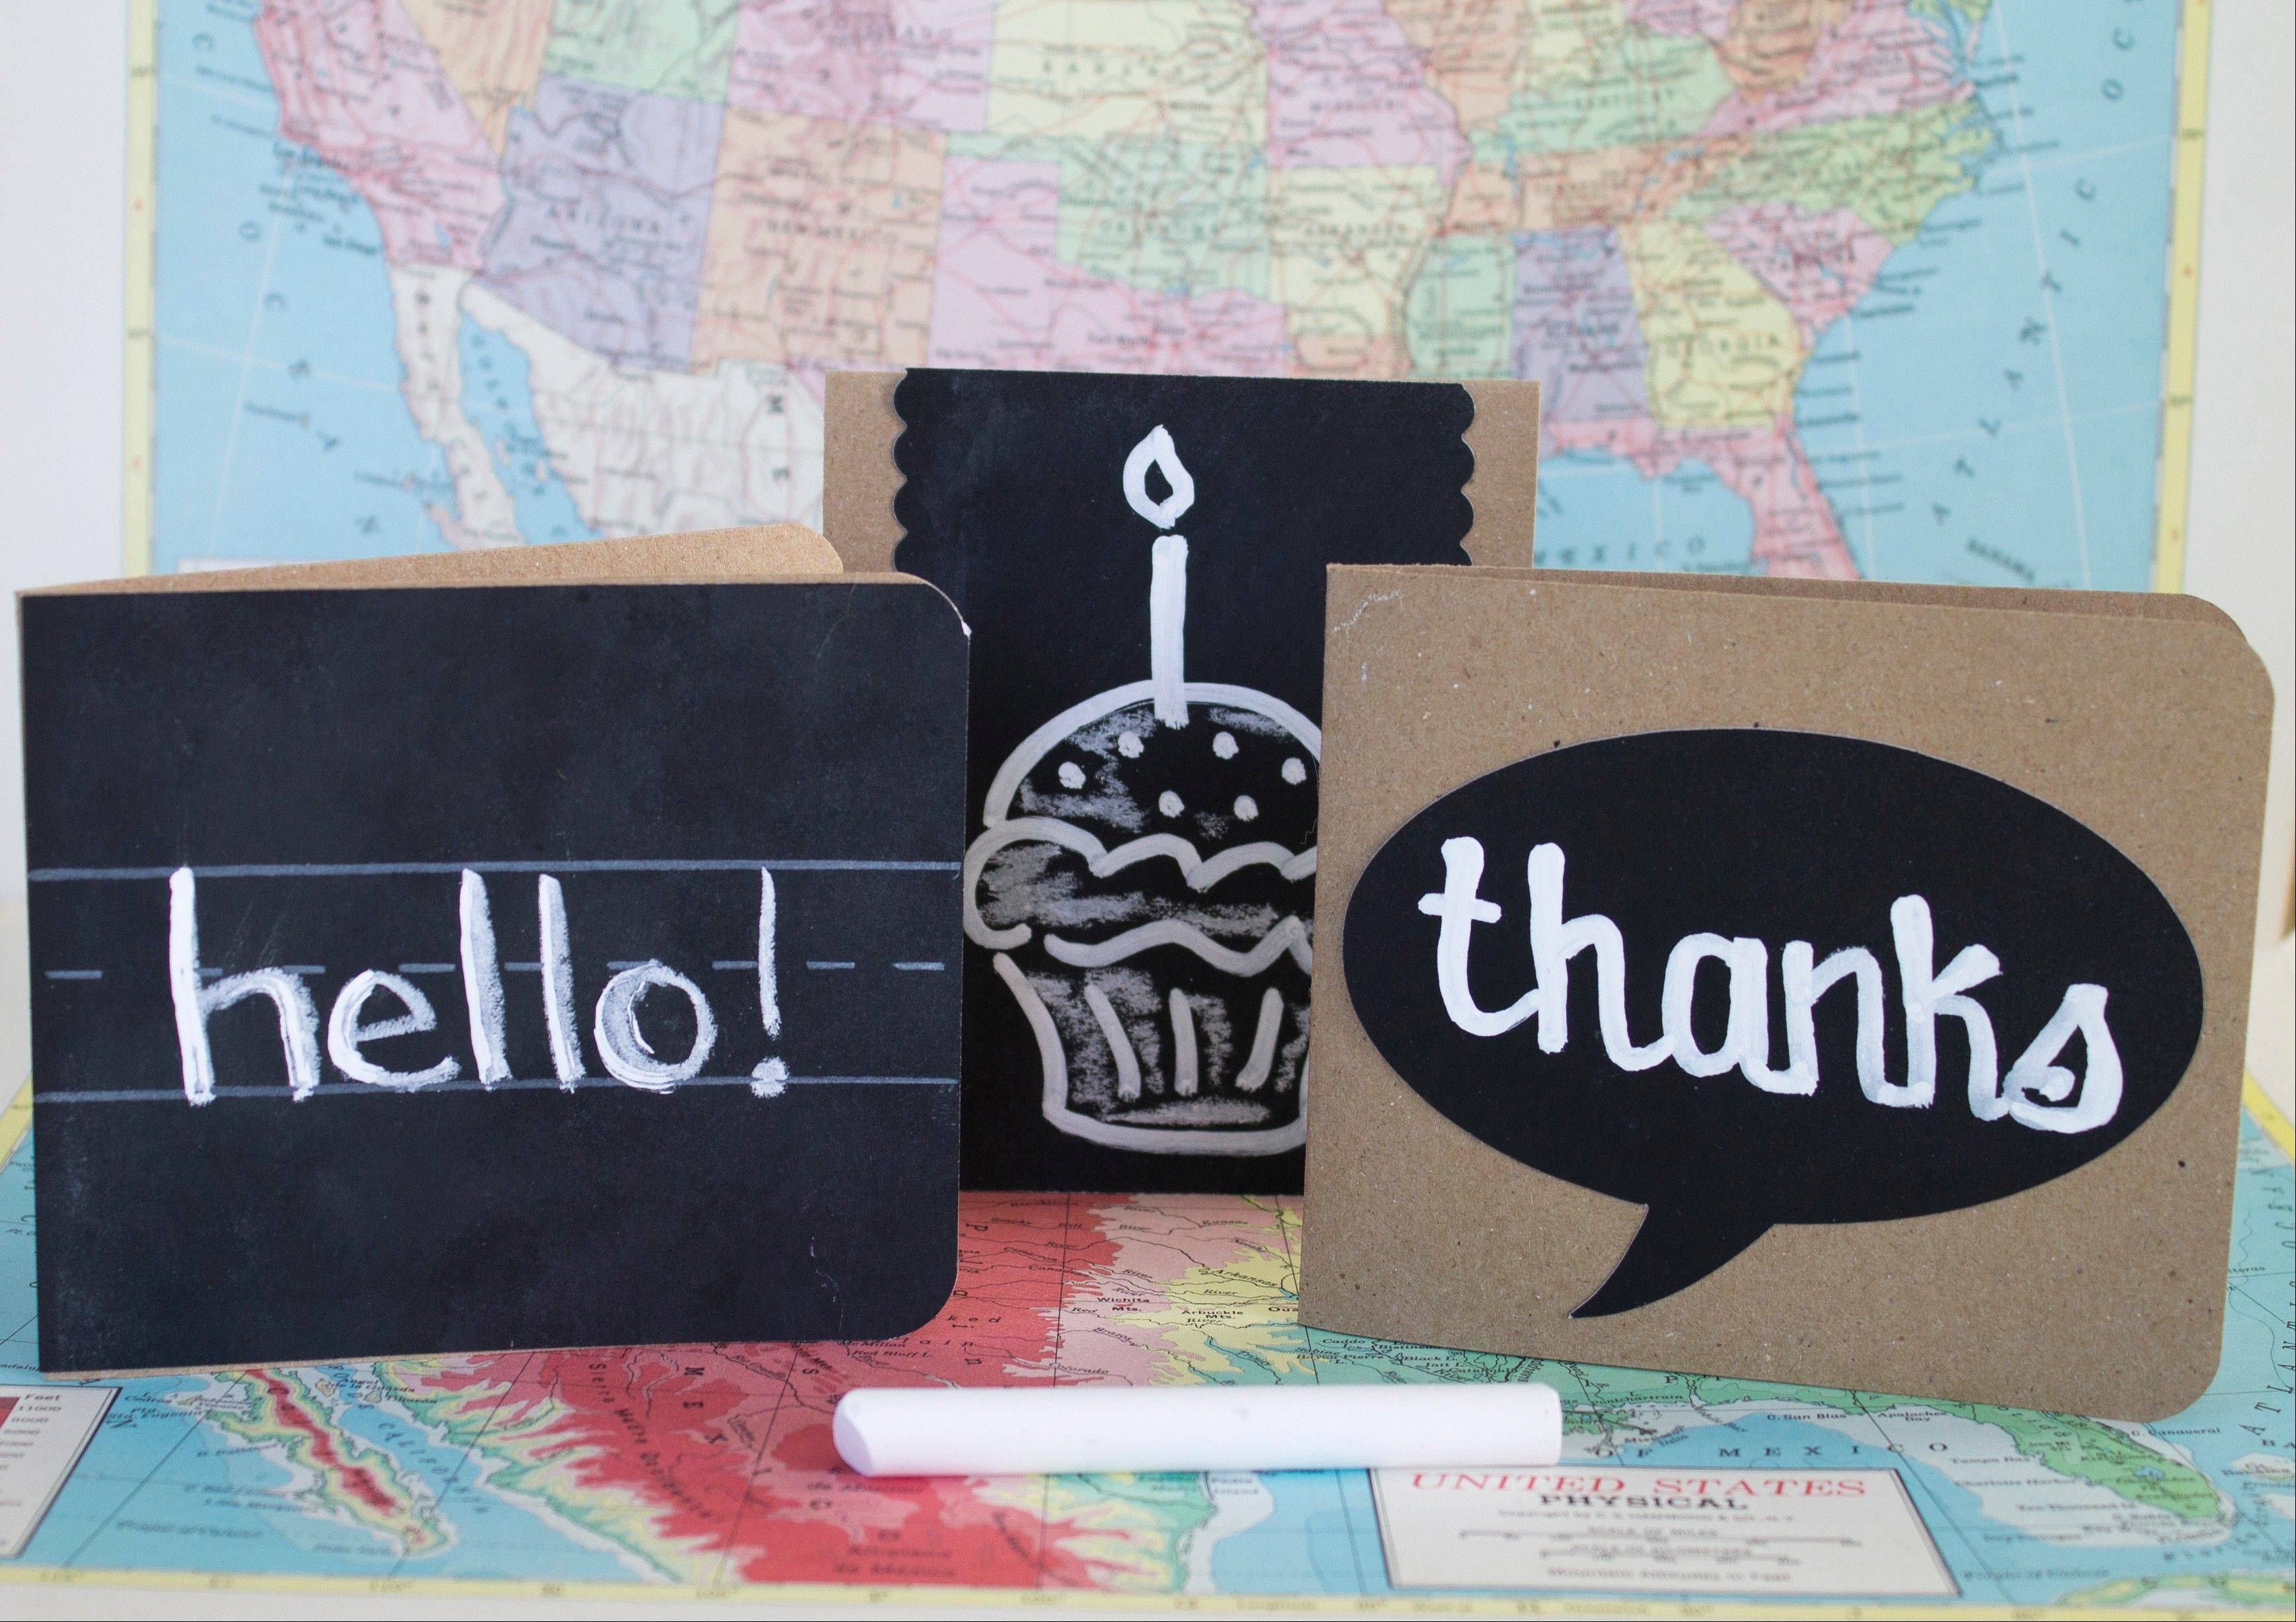 Handmade notecards are made by spraying cardstock with chalkboard paint. Get in the back-to-school mood by making notecards that incorporate old-school elements like chalkboards, vintage maps, notebook paper and brown paper lunch sacks.